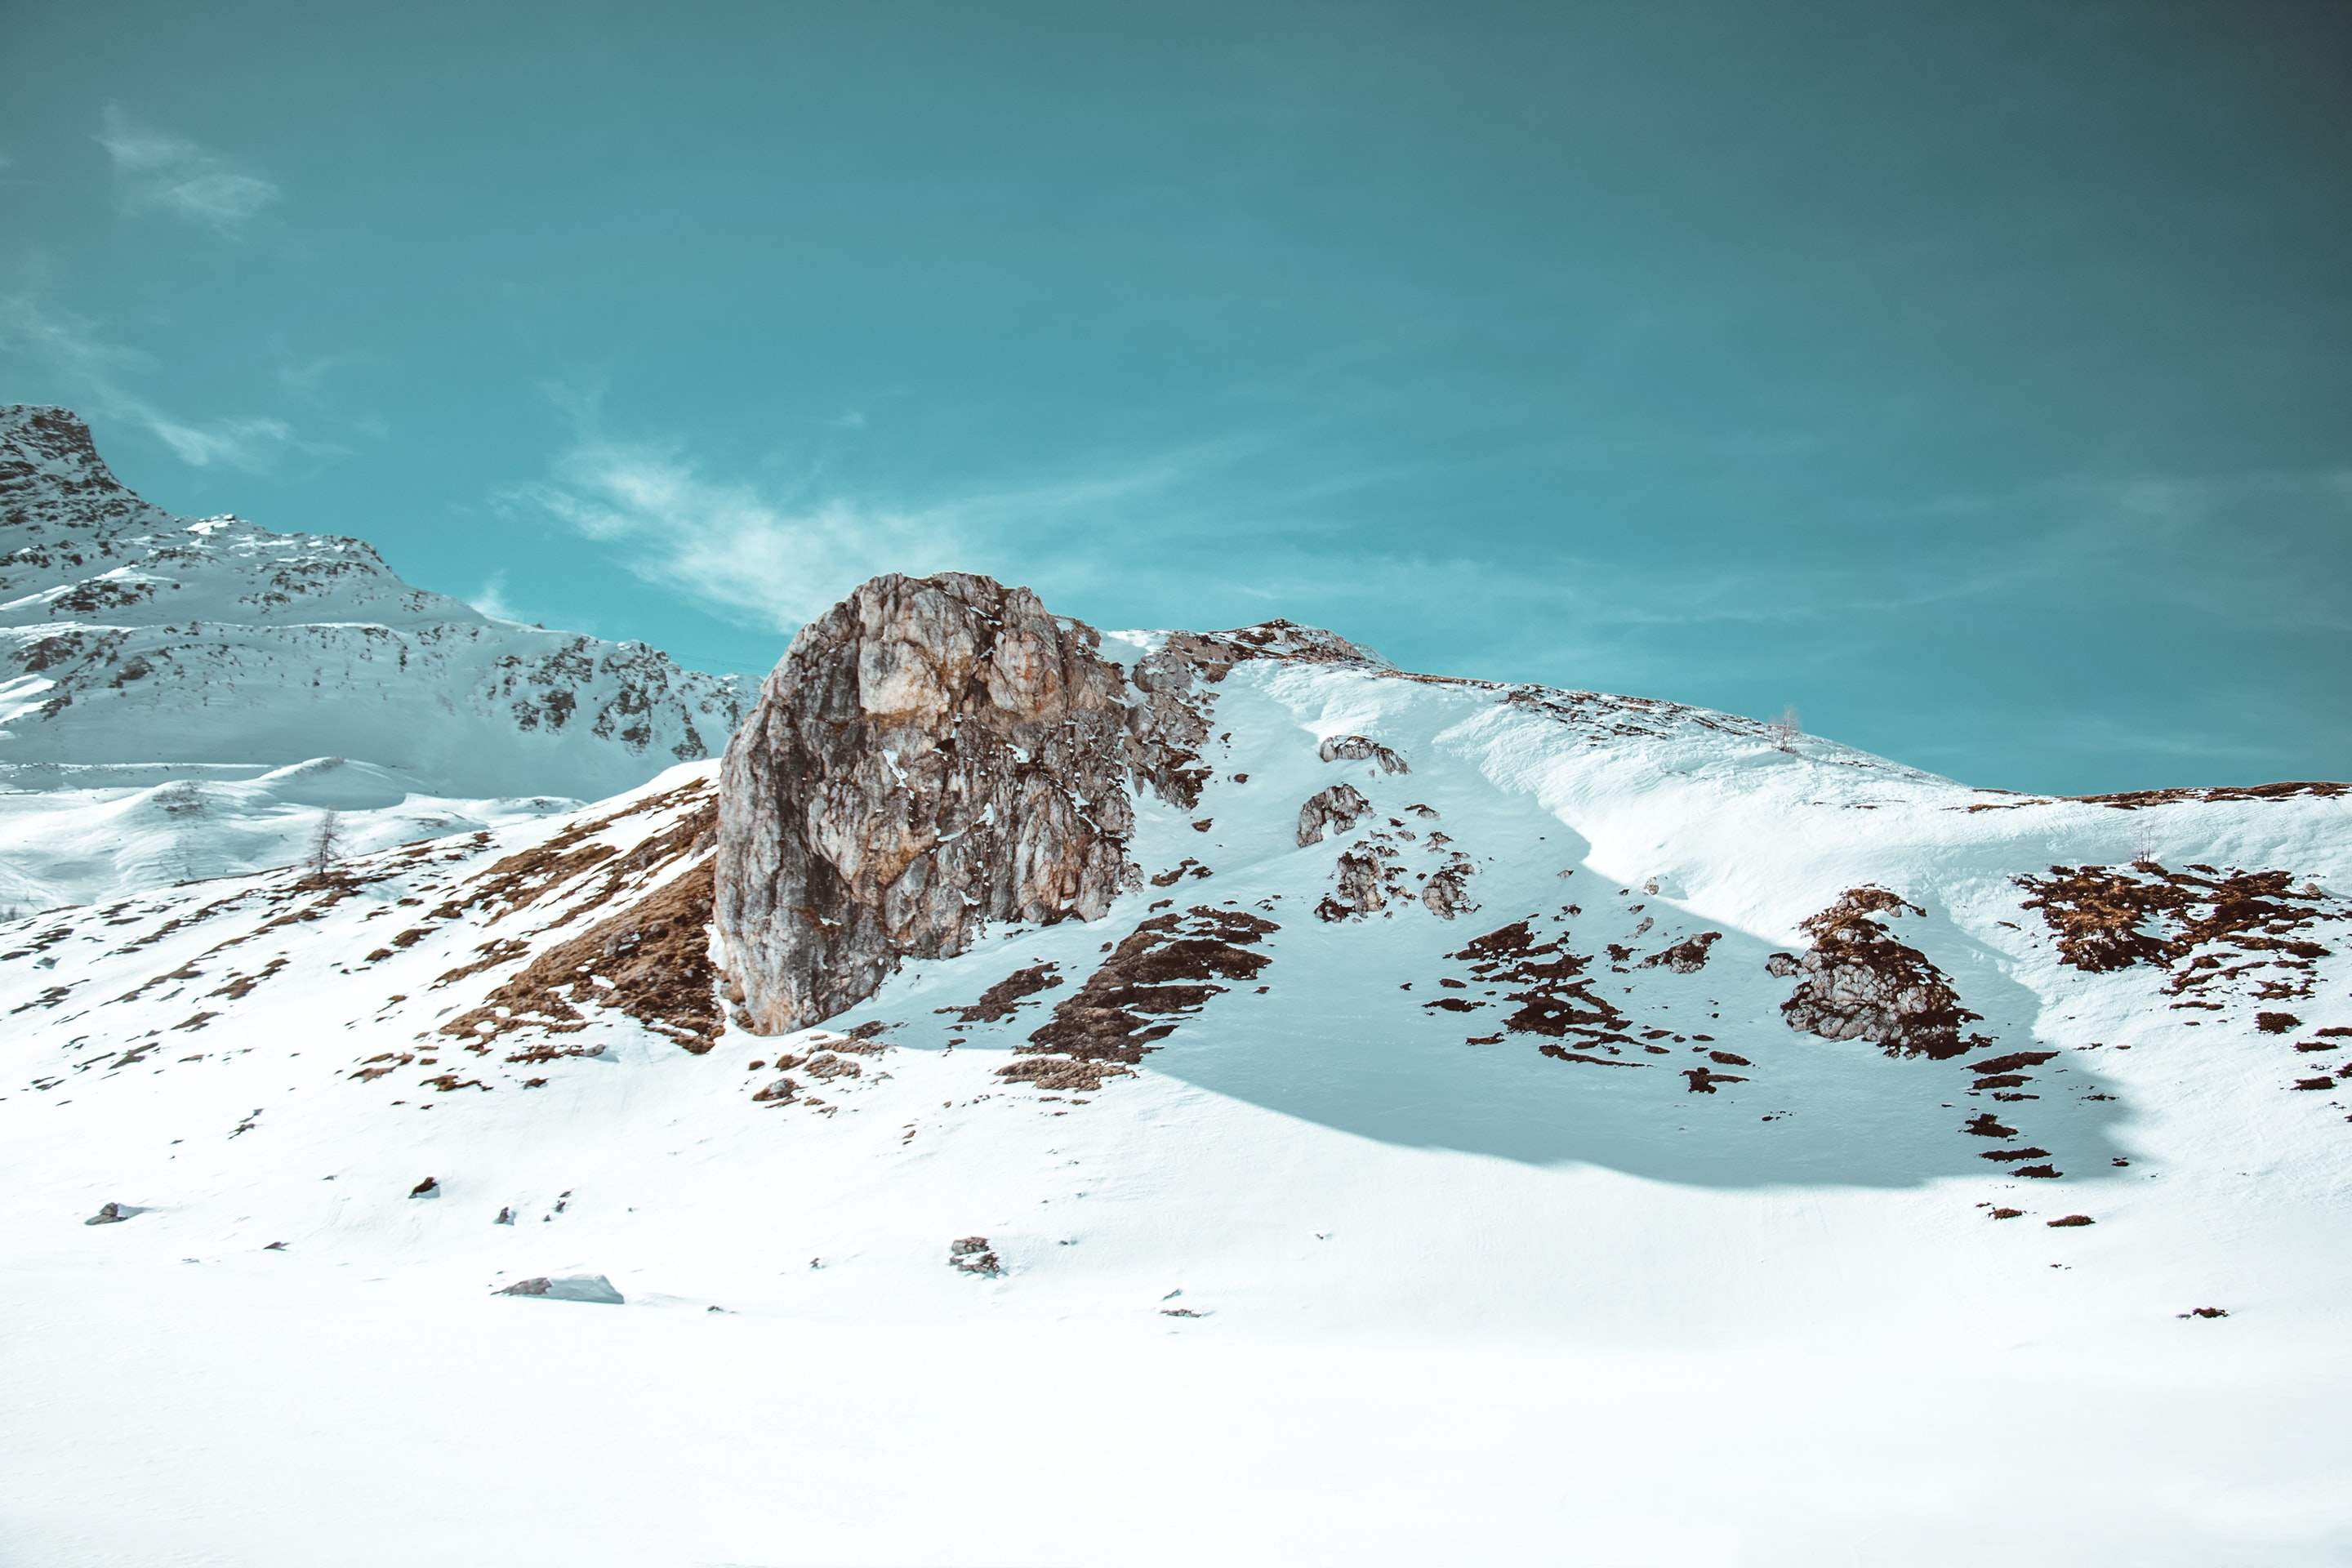 rock formation filled with snow